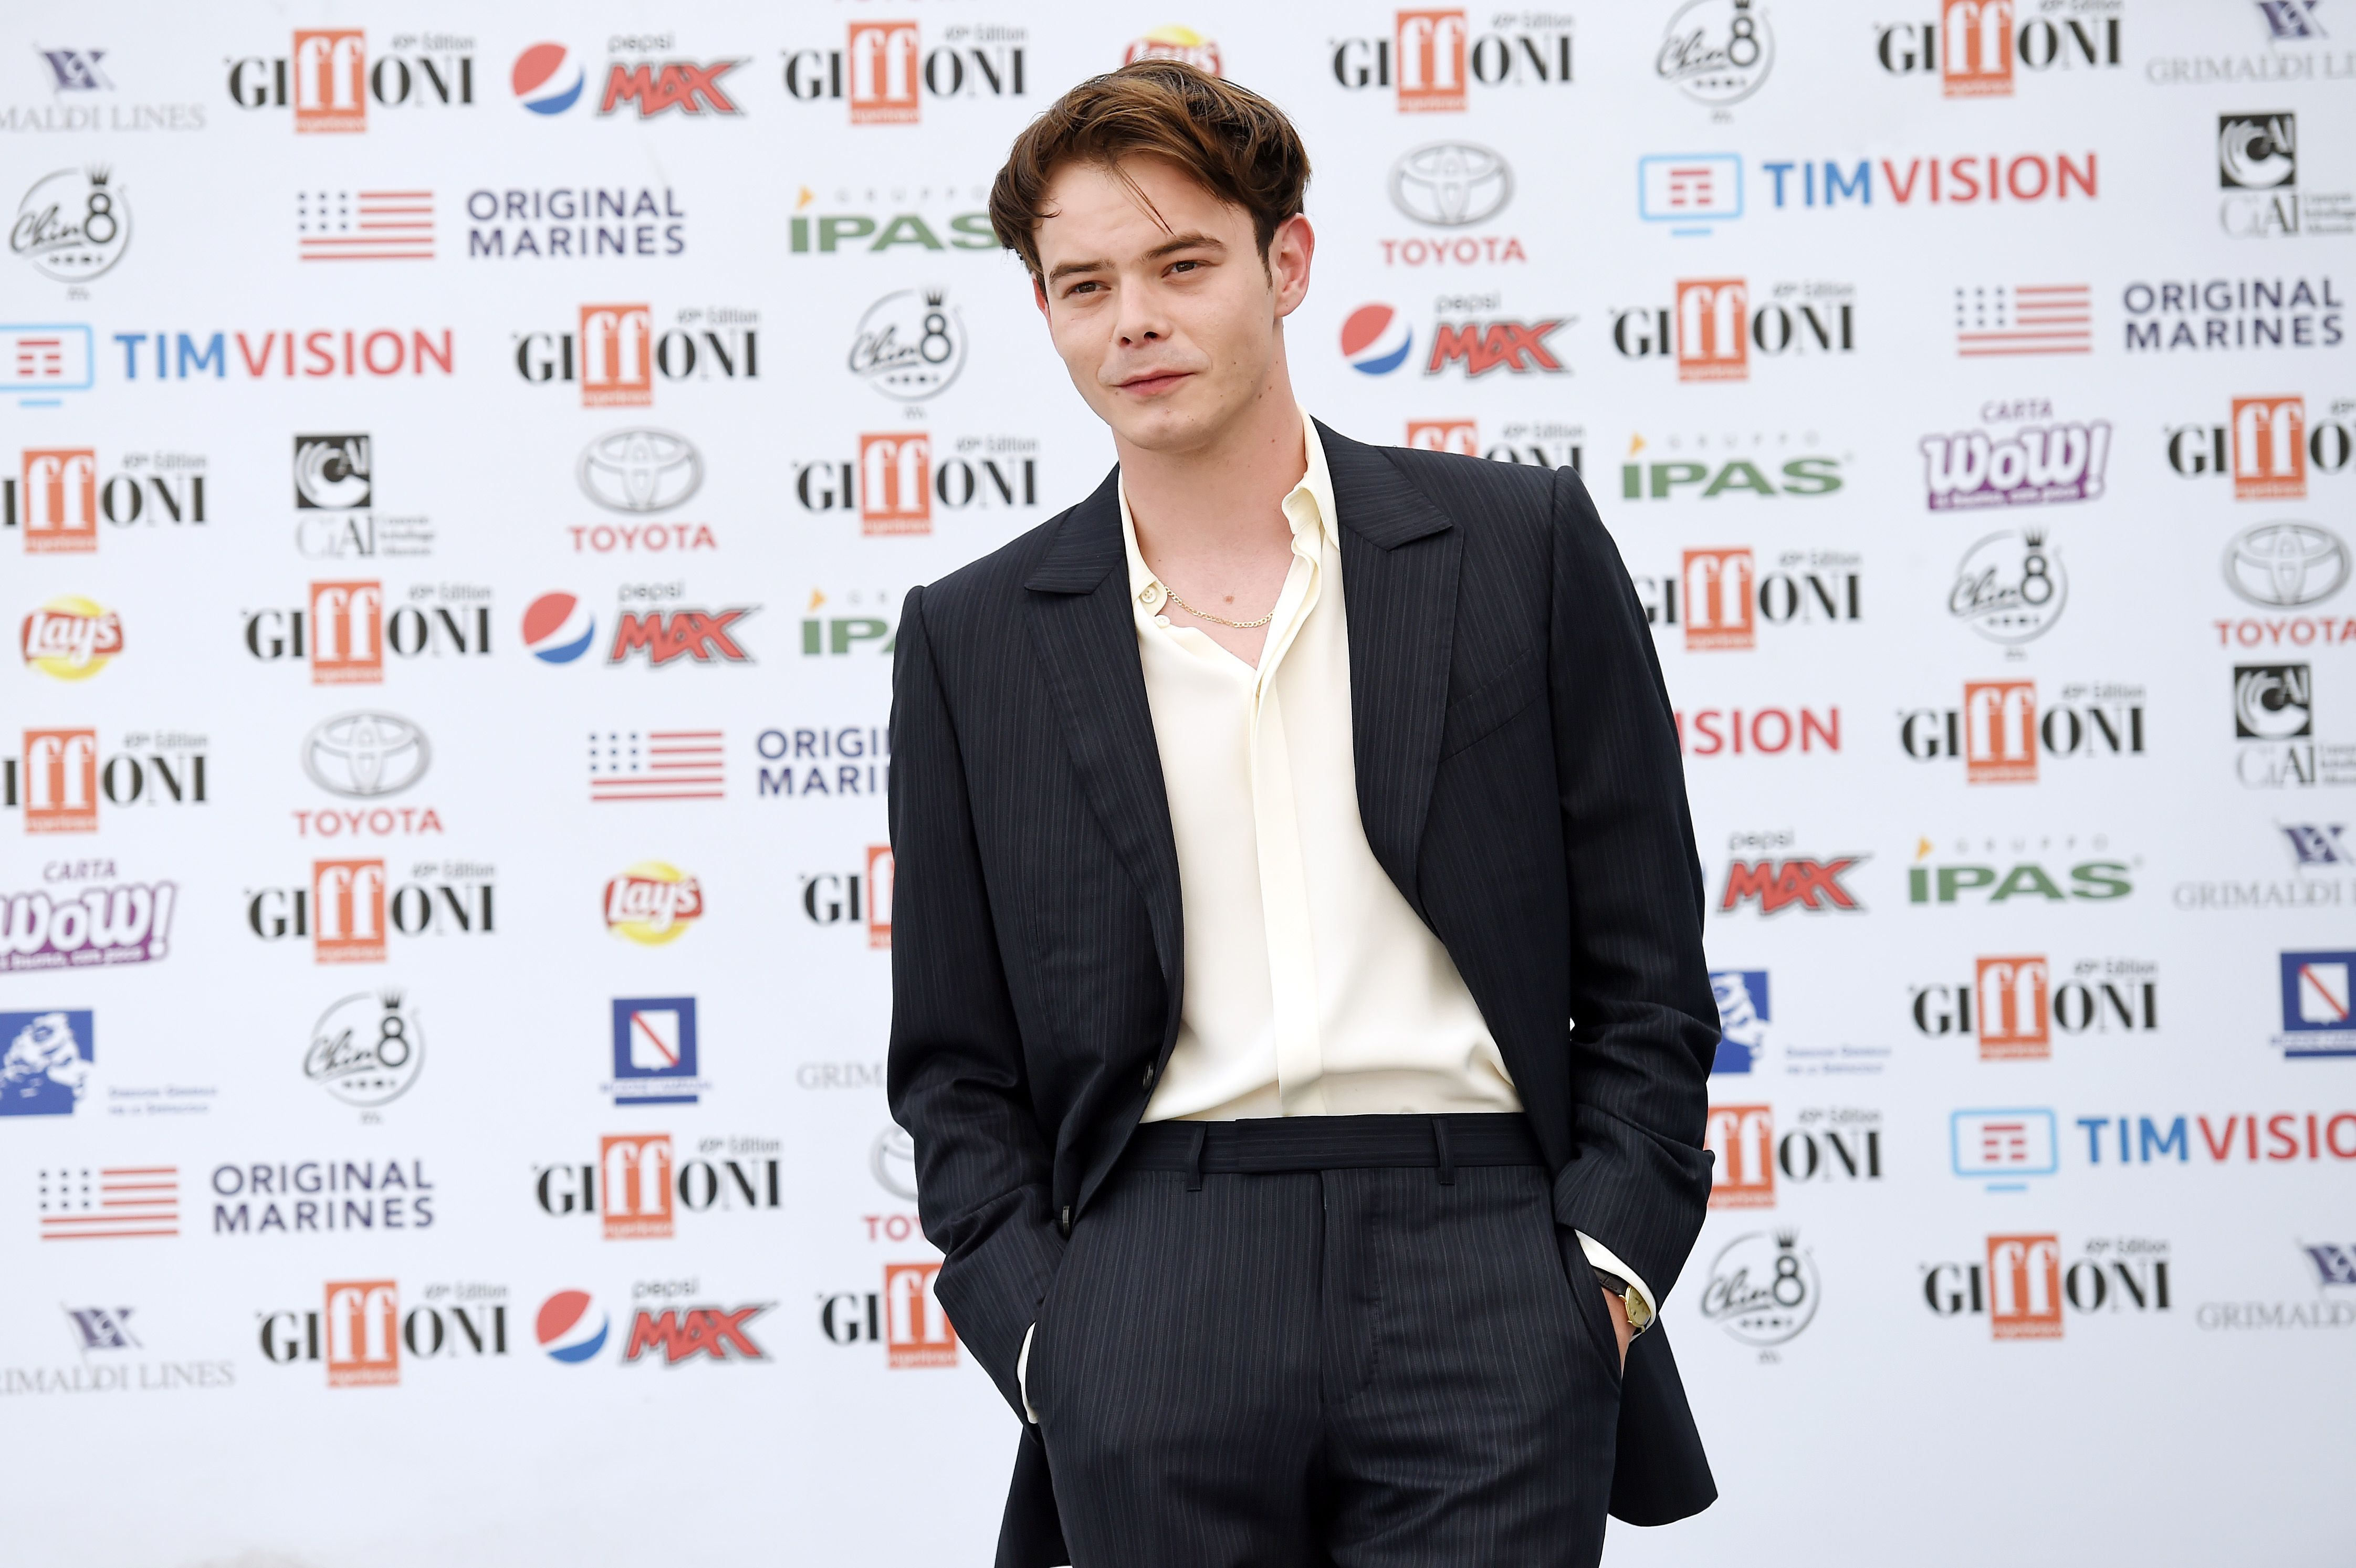 Charlie Heaton at the Giffoni Film Festival 2019 in Giffoni Valle Piana/Photo:Getty Images